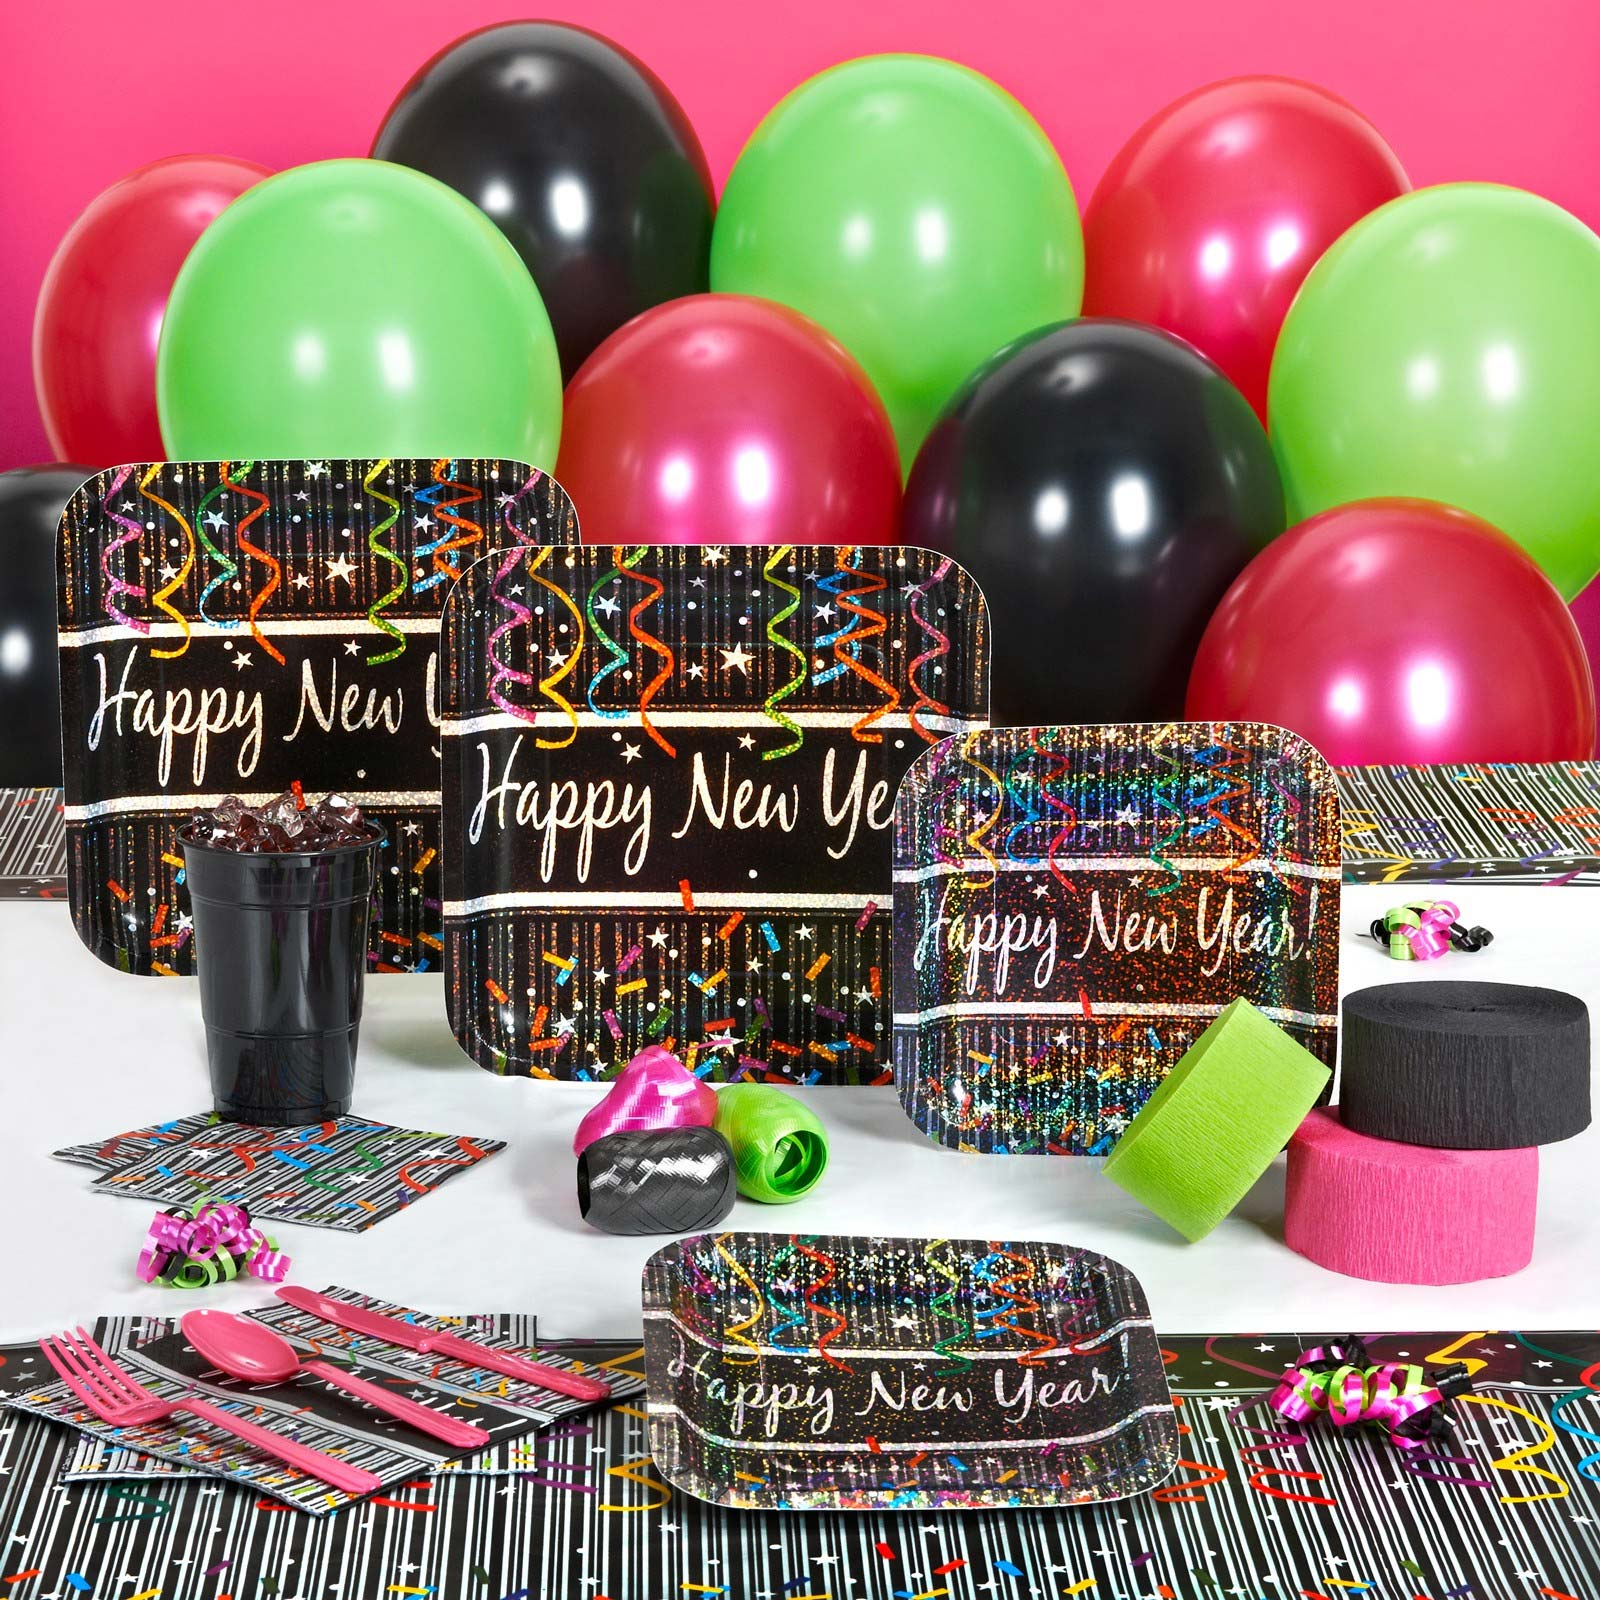 http://1.bp.blogspot.com/-w87RLUECDxo/UNyGchatsSI/AAAAAAAAA-E/auyTYRs155A/s1600/New-Year-Ornaments-make-New-Year-Party-Decorations-more-Glittering.jpg